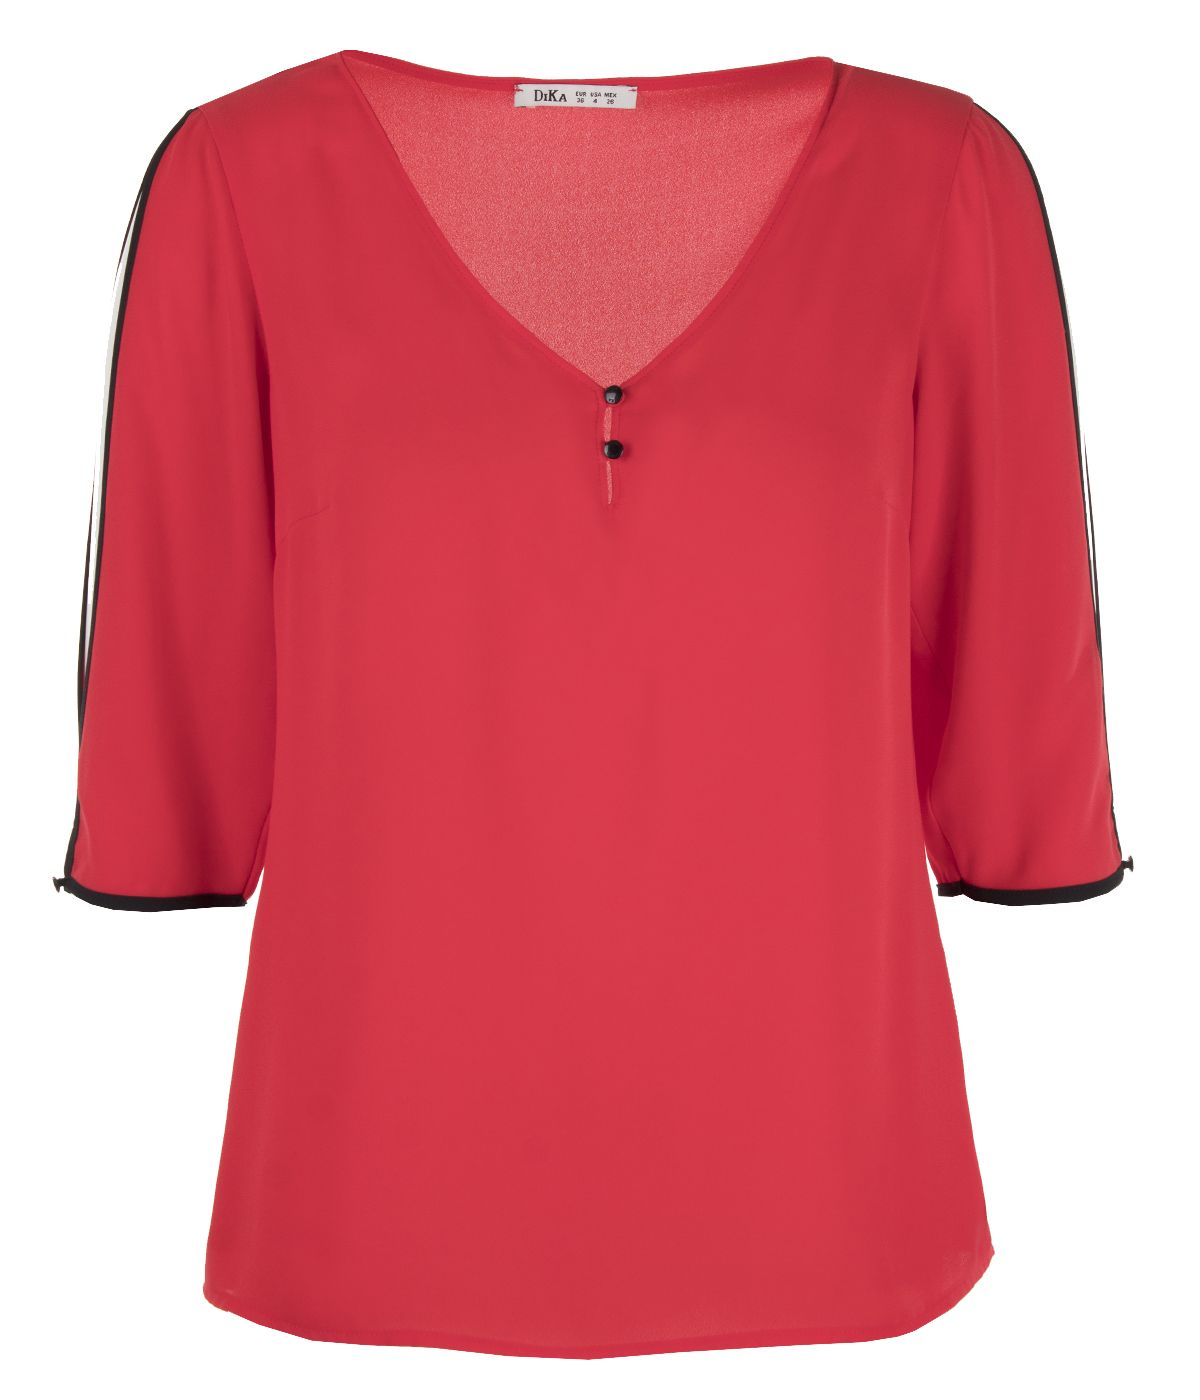 V-neck blouse with 3/4 sleeves